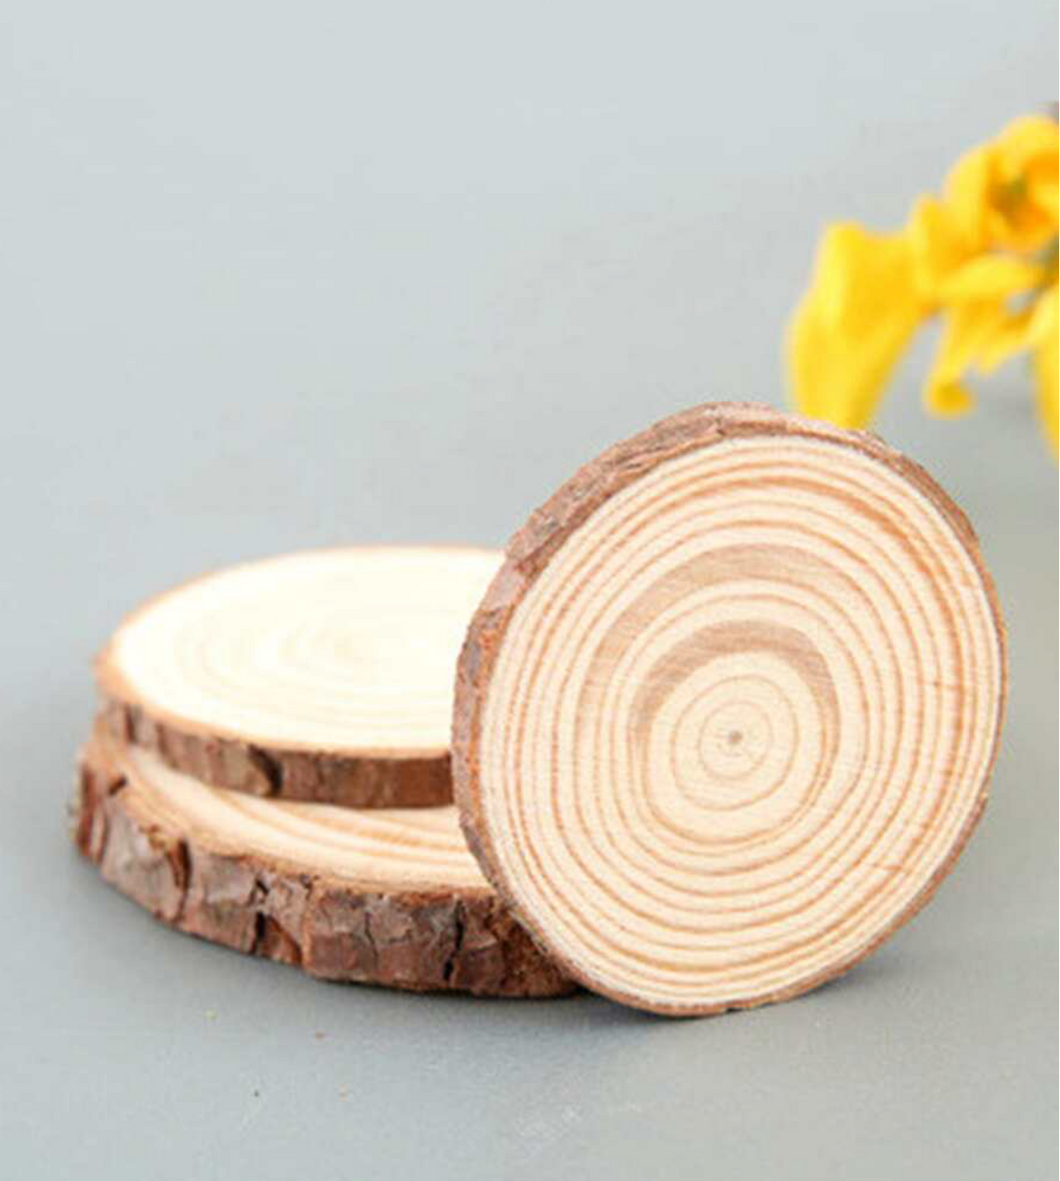 Wooden Annual Ring Coasters